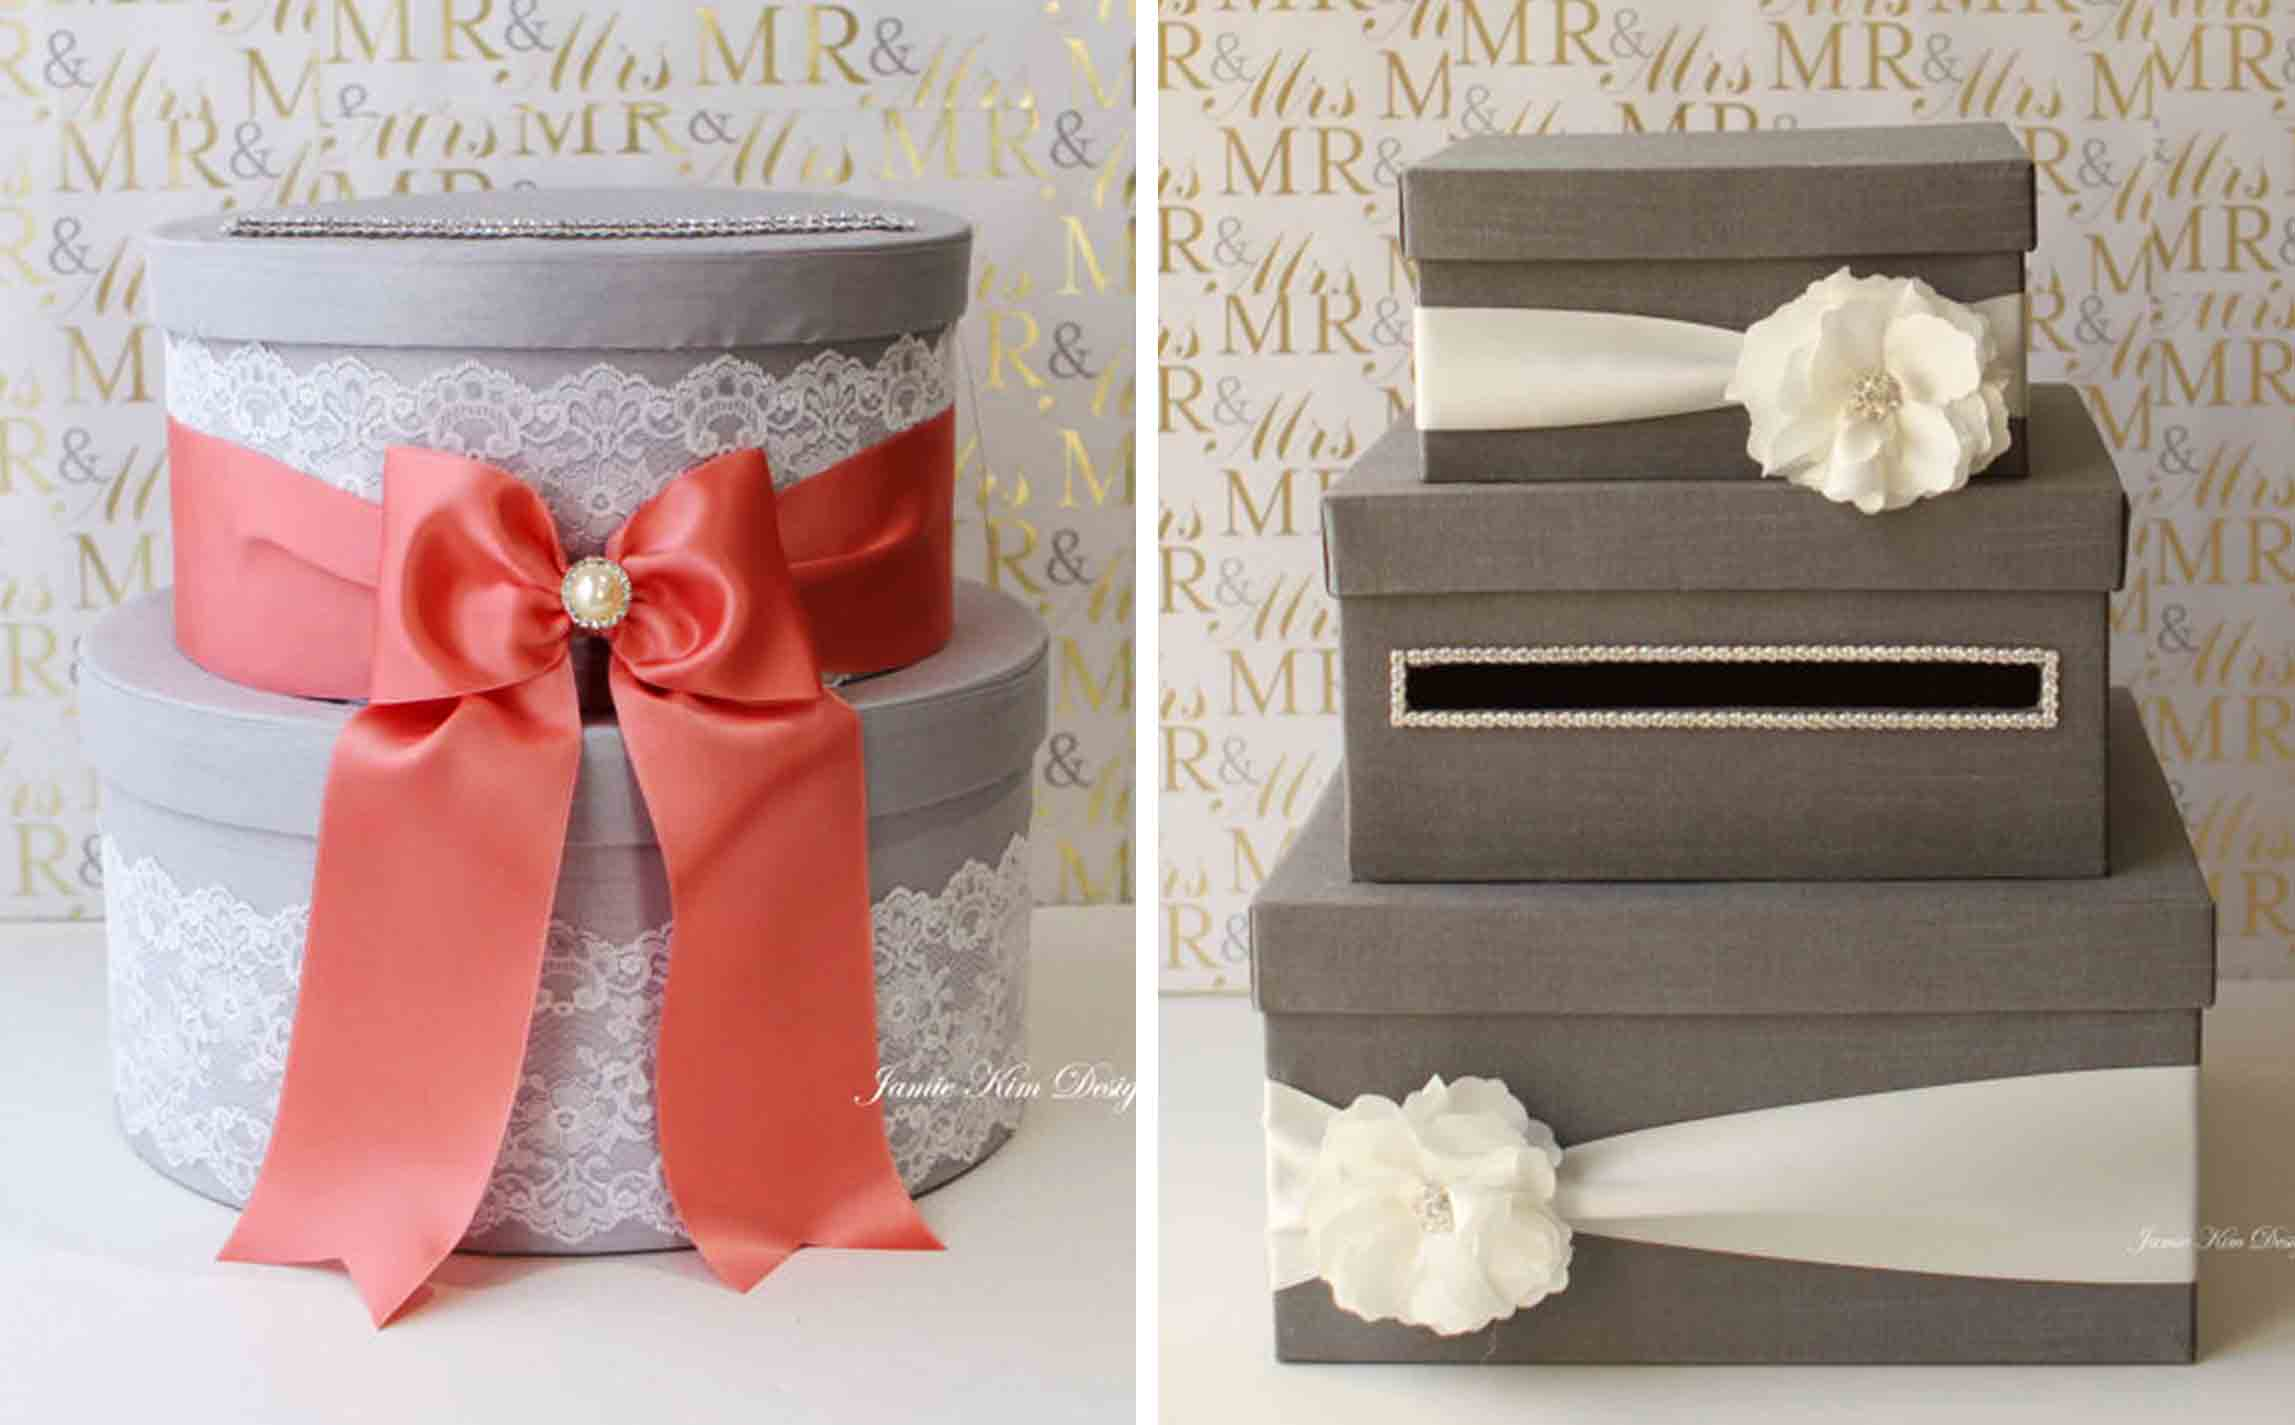 Buy Wedding Gift Box : Find adorable wedding gift boxes and wedding hat boxes like the ones ...